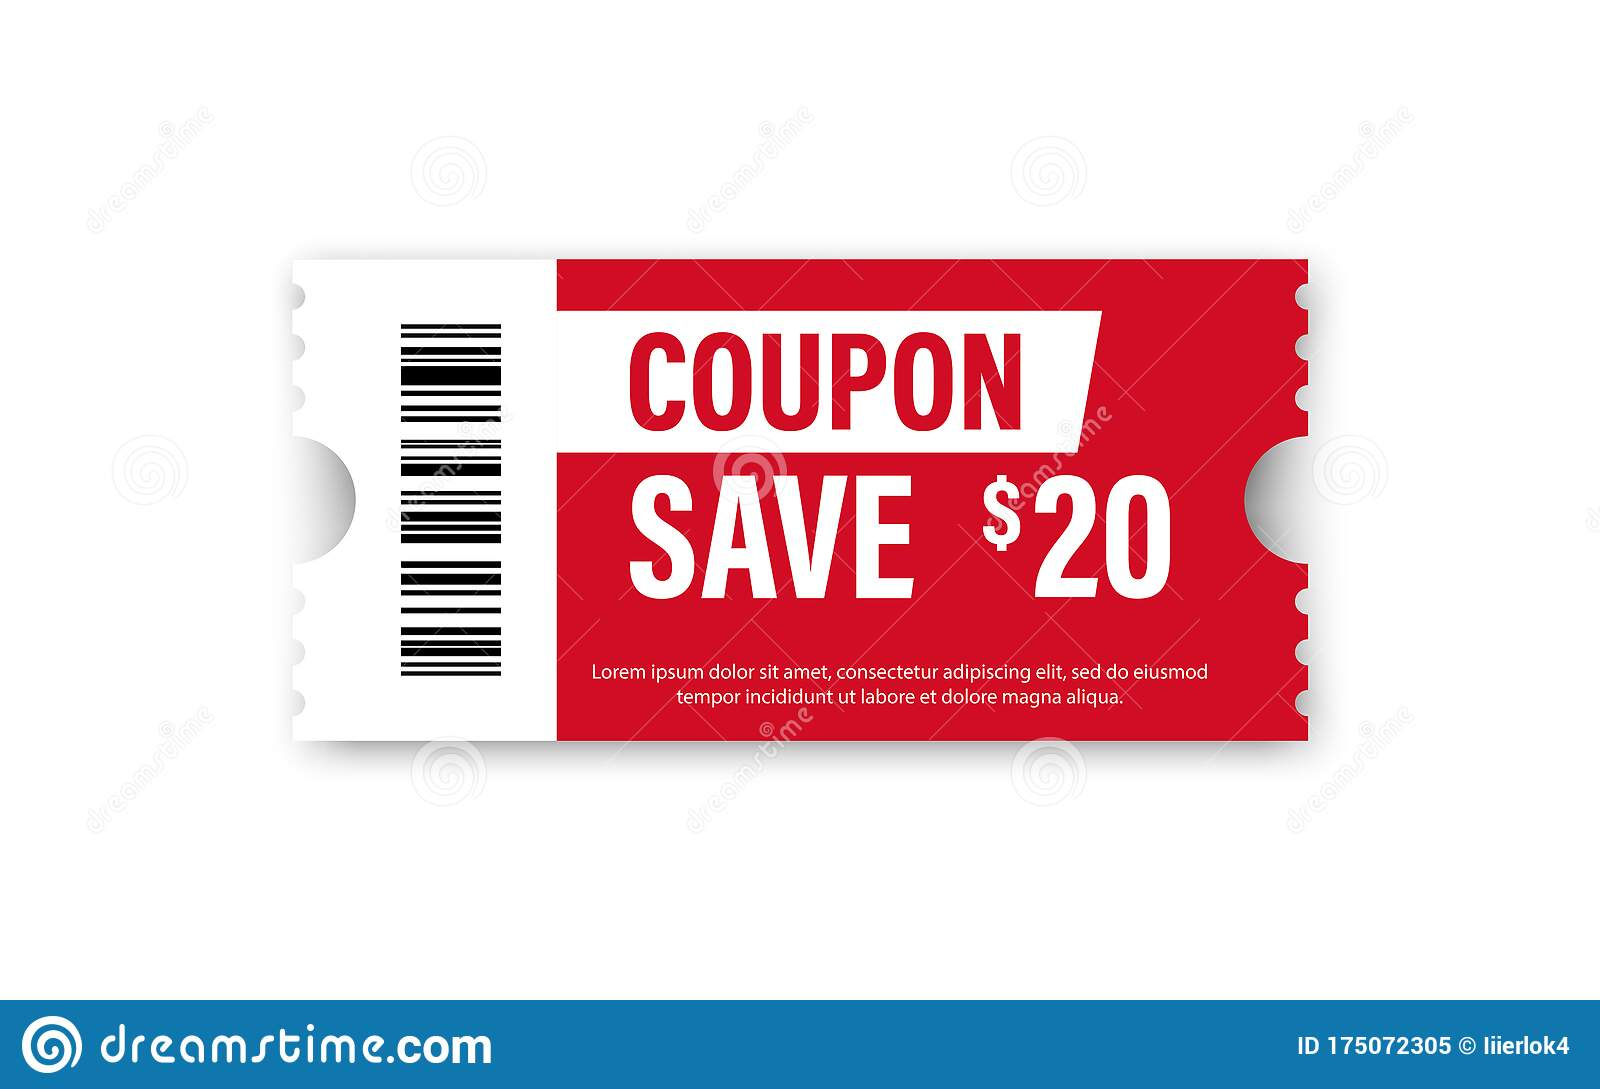 Set Of Template Coupon Gift Coupon Element Template Graphics Design Voucher Promo Code Shopping Marketing Food And Drink Stock Vector Illustration Of Isolated Present 175072305